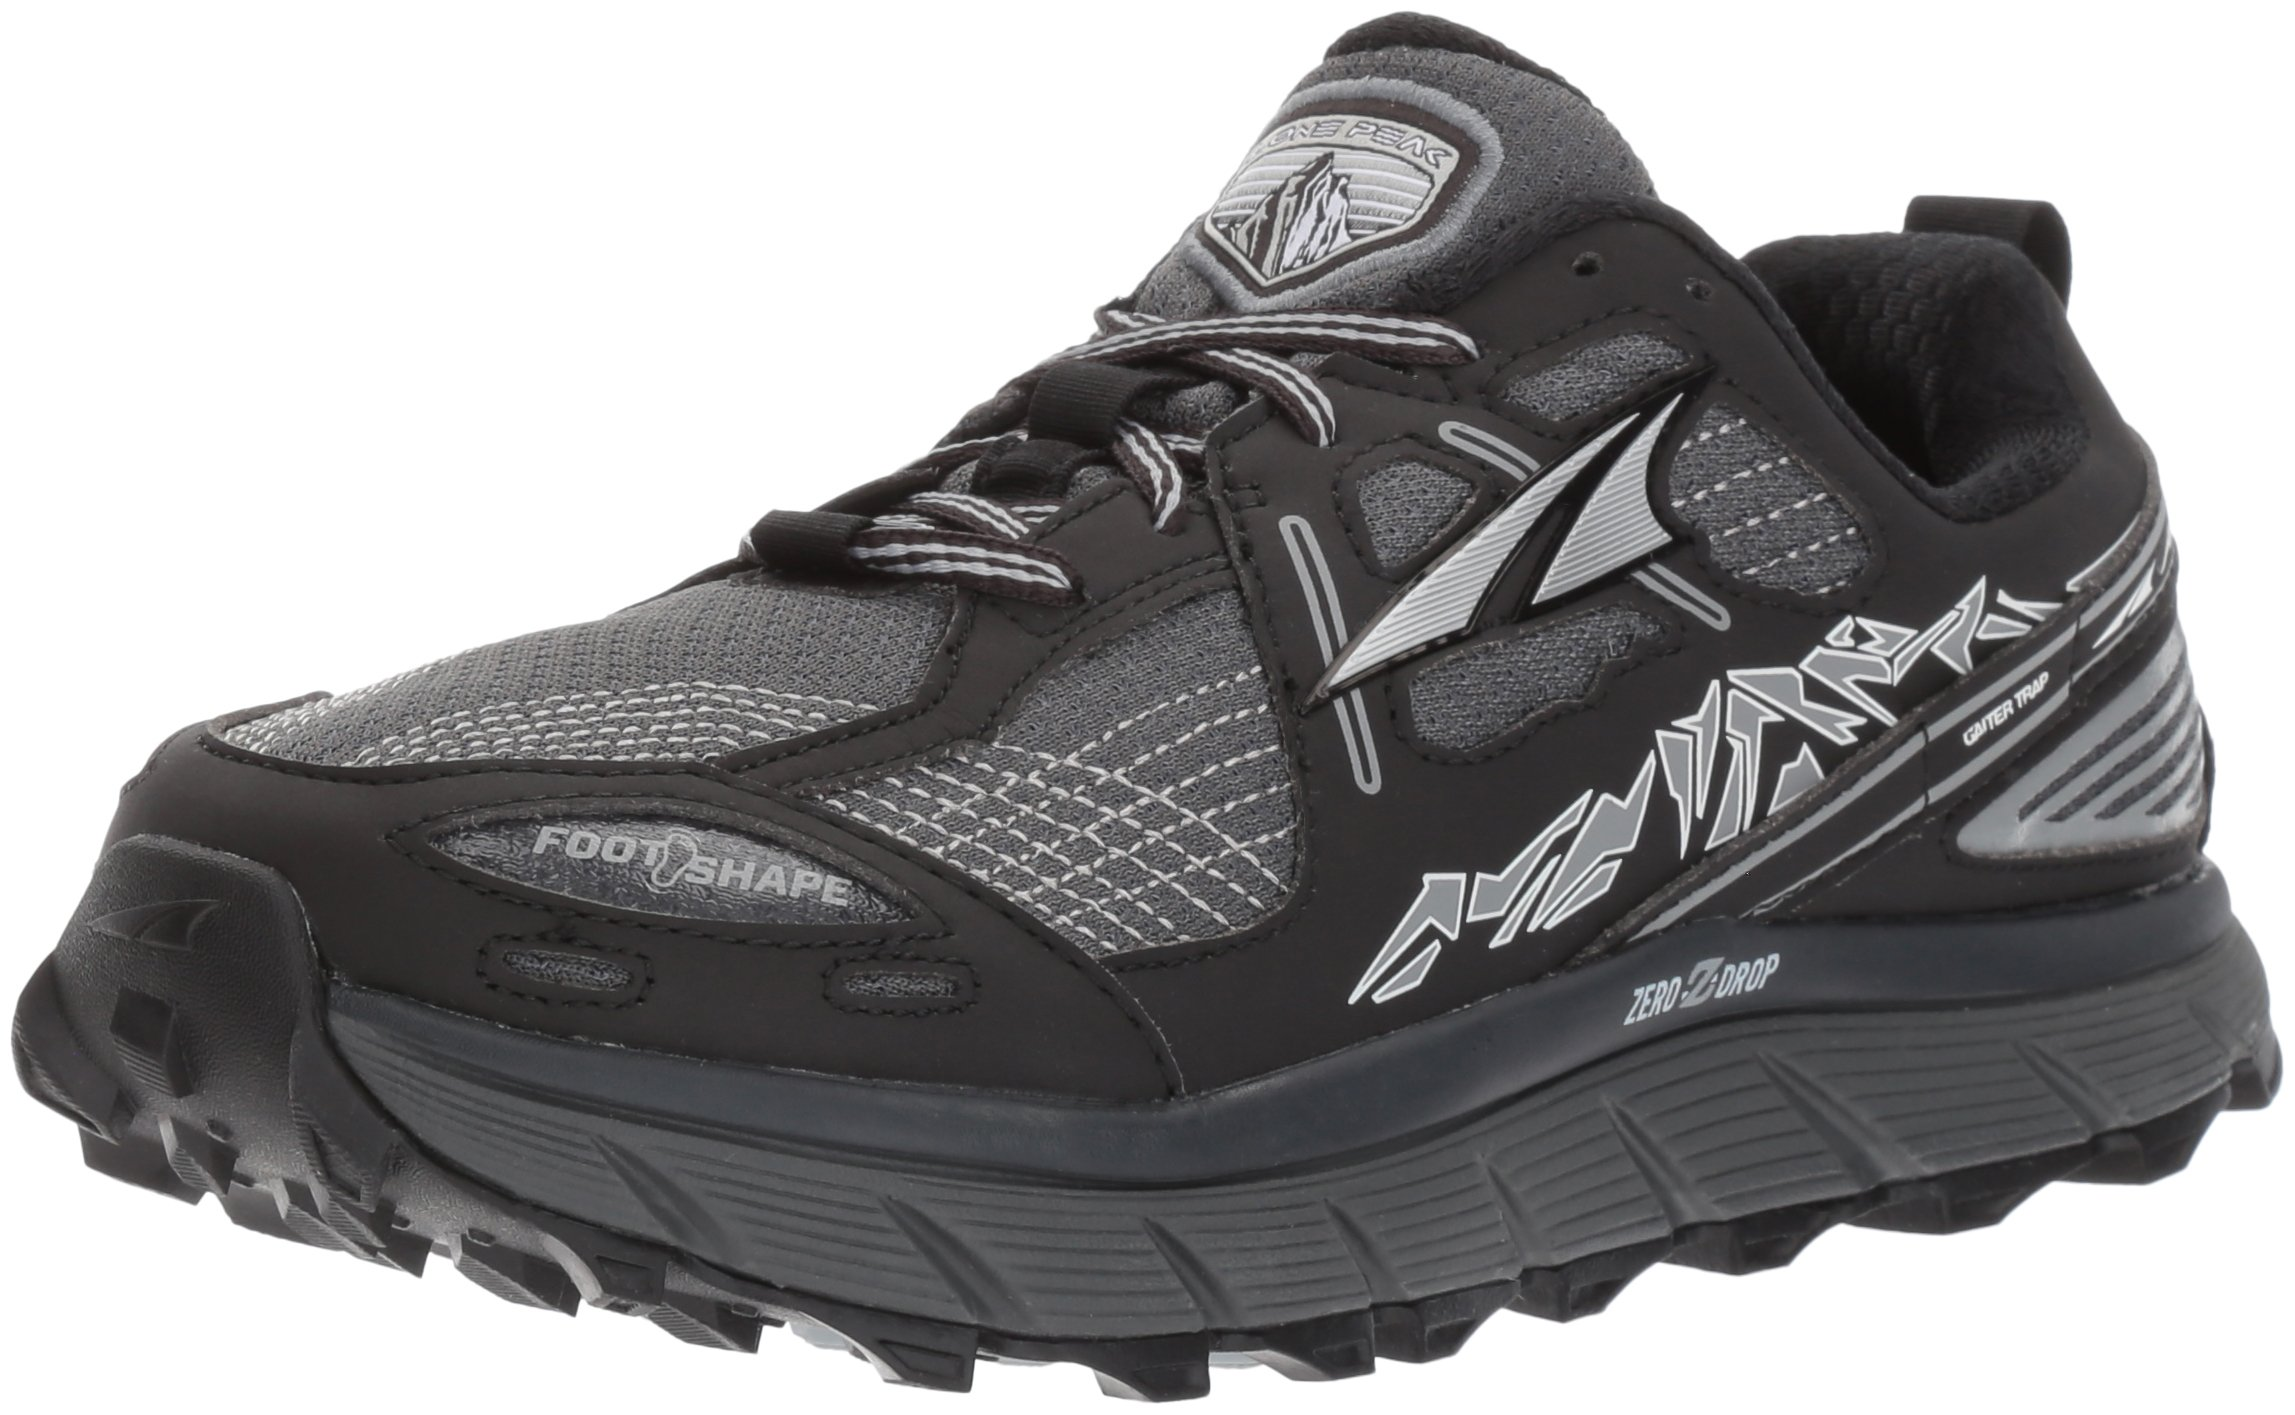 Altra Women's Lone Peak 3.5 Running Shoe, Black, 8.5 B US by Altra (Image #1)